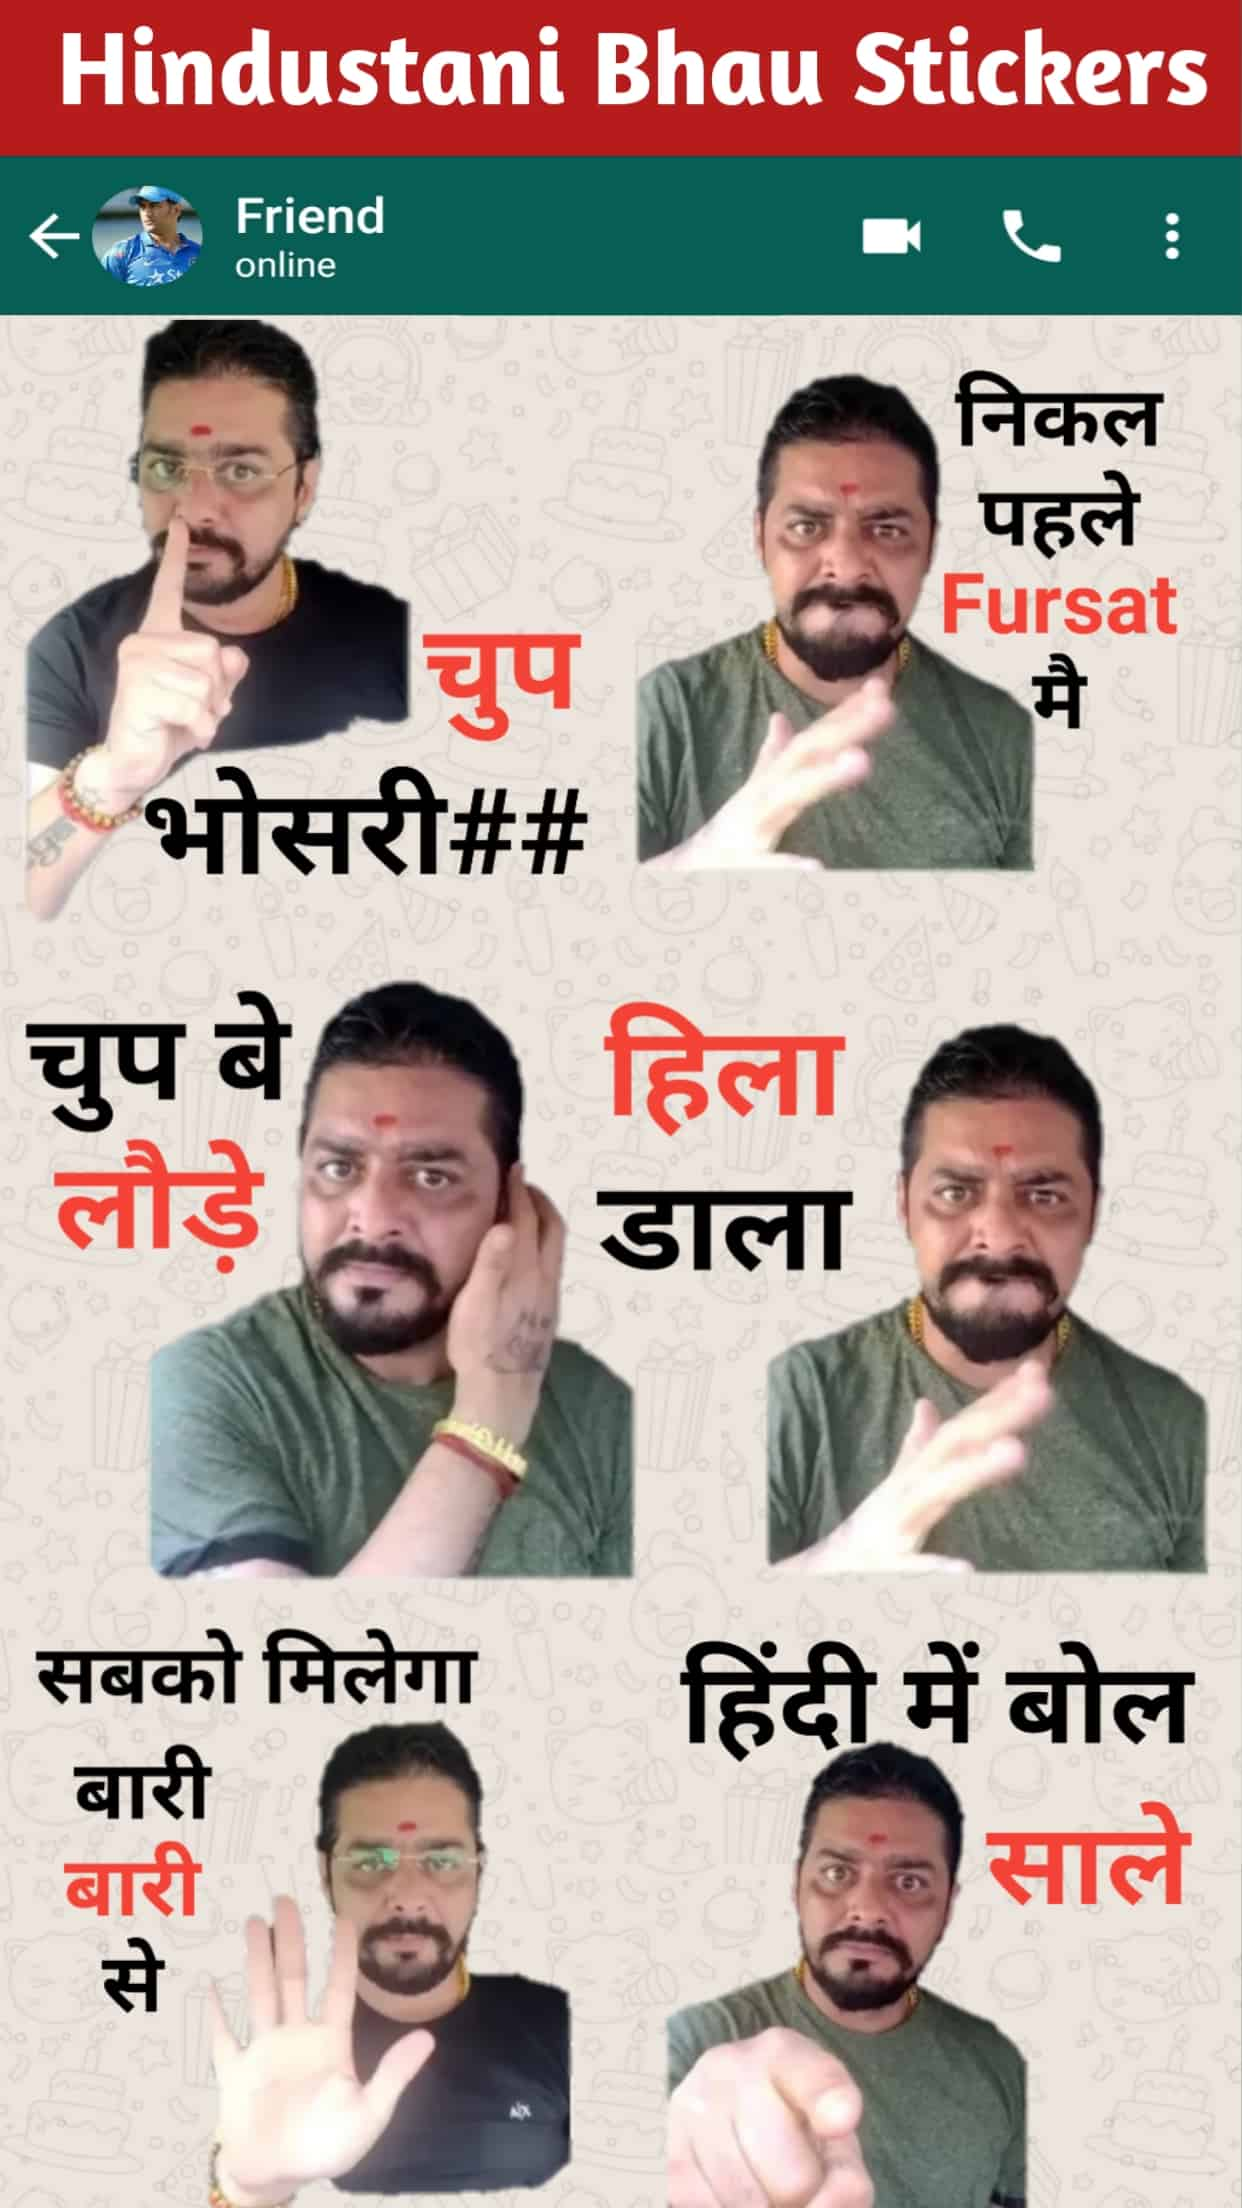 Hindi Stickers